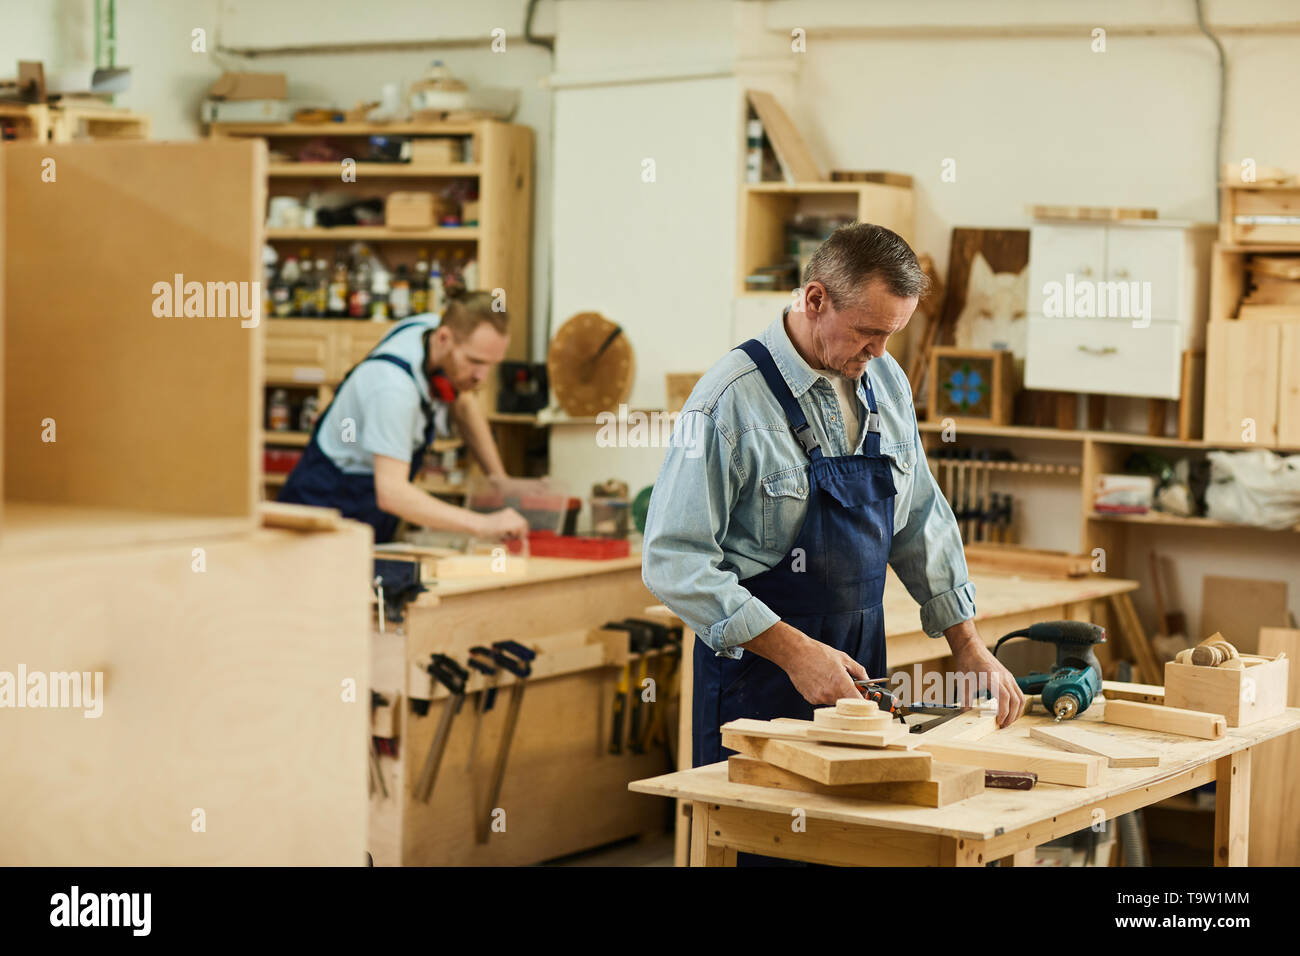 Portrait of two carpenters working with wood white assembling furniture in workshop, copy space - Stock Image